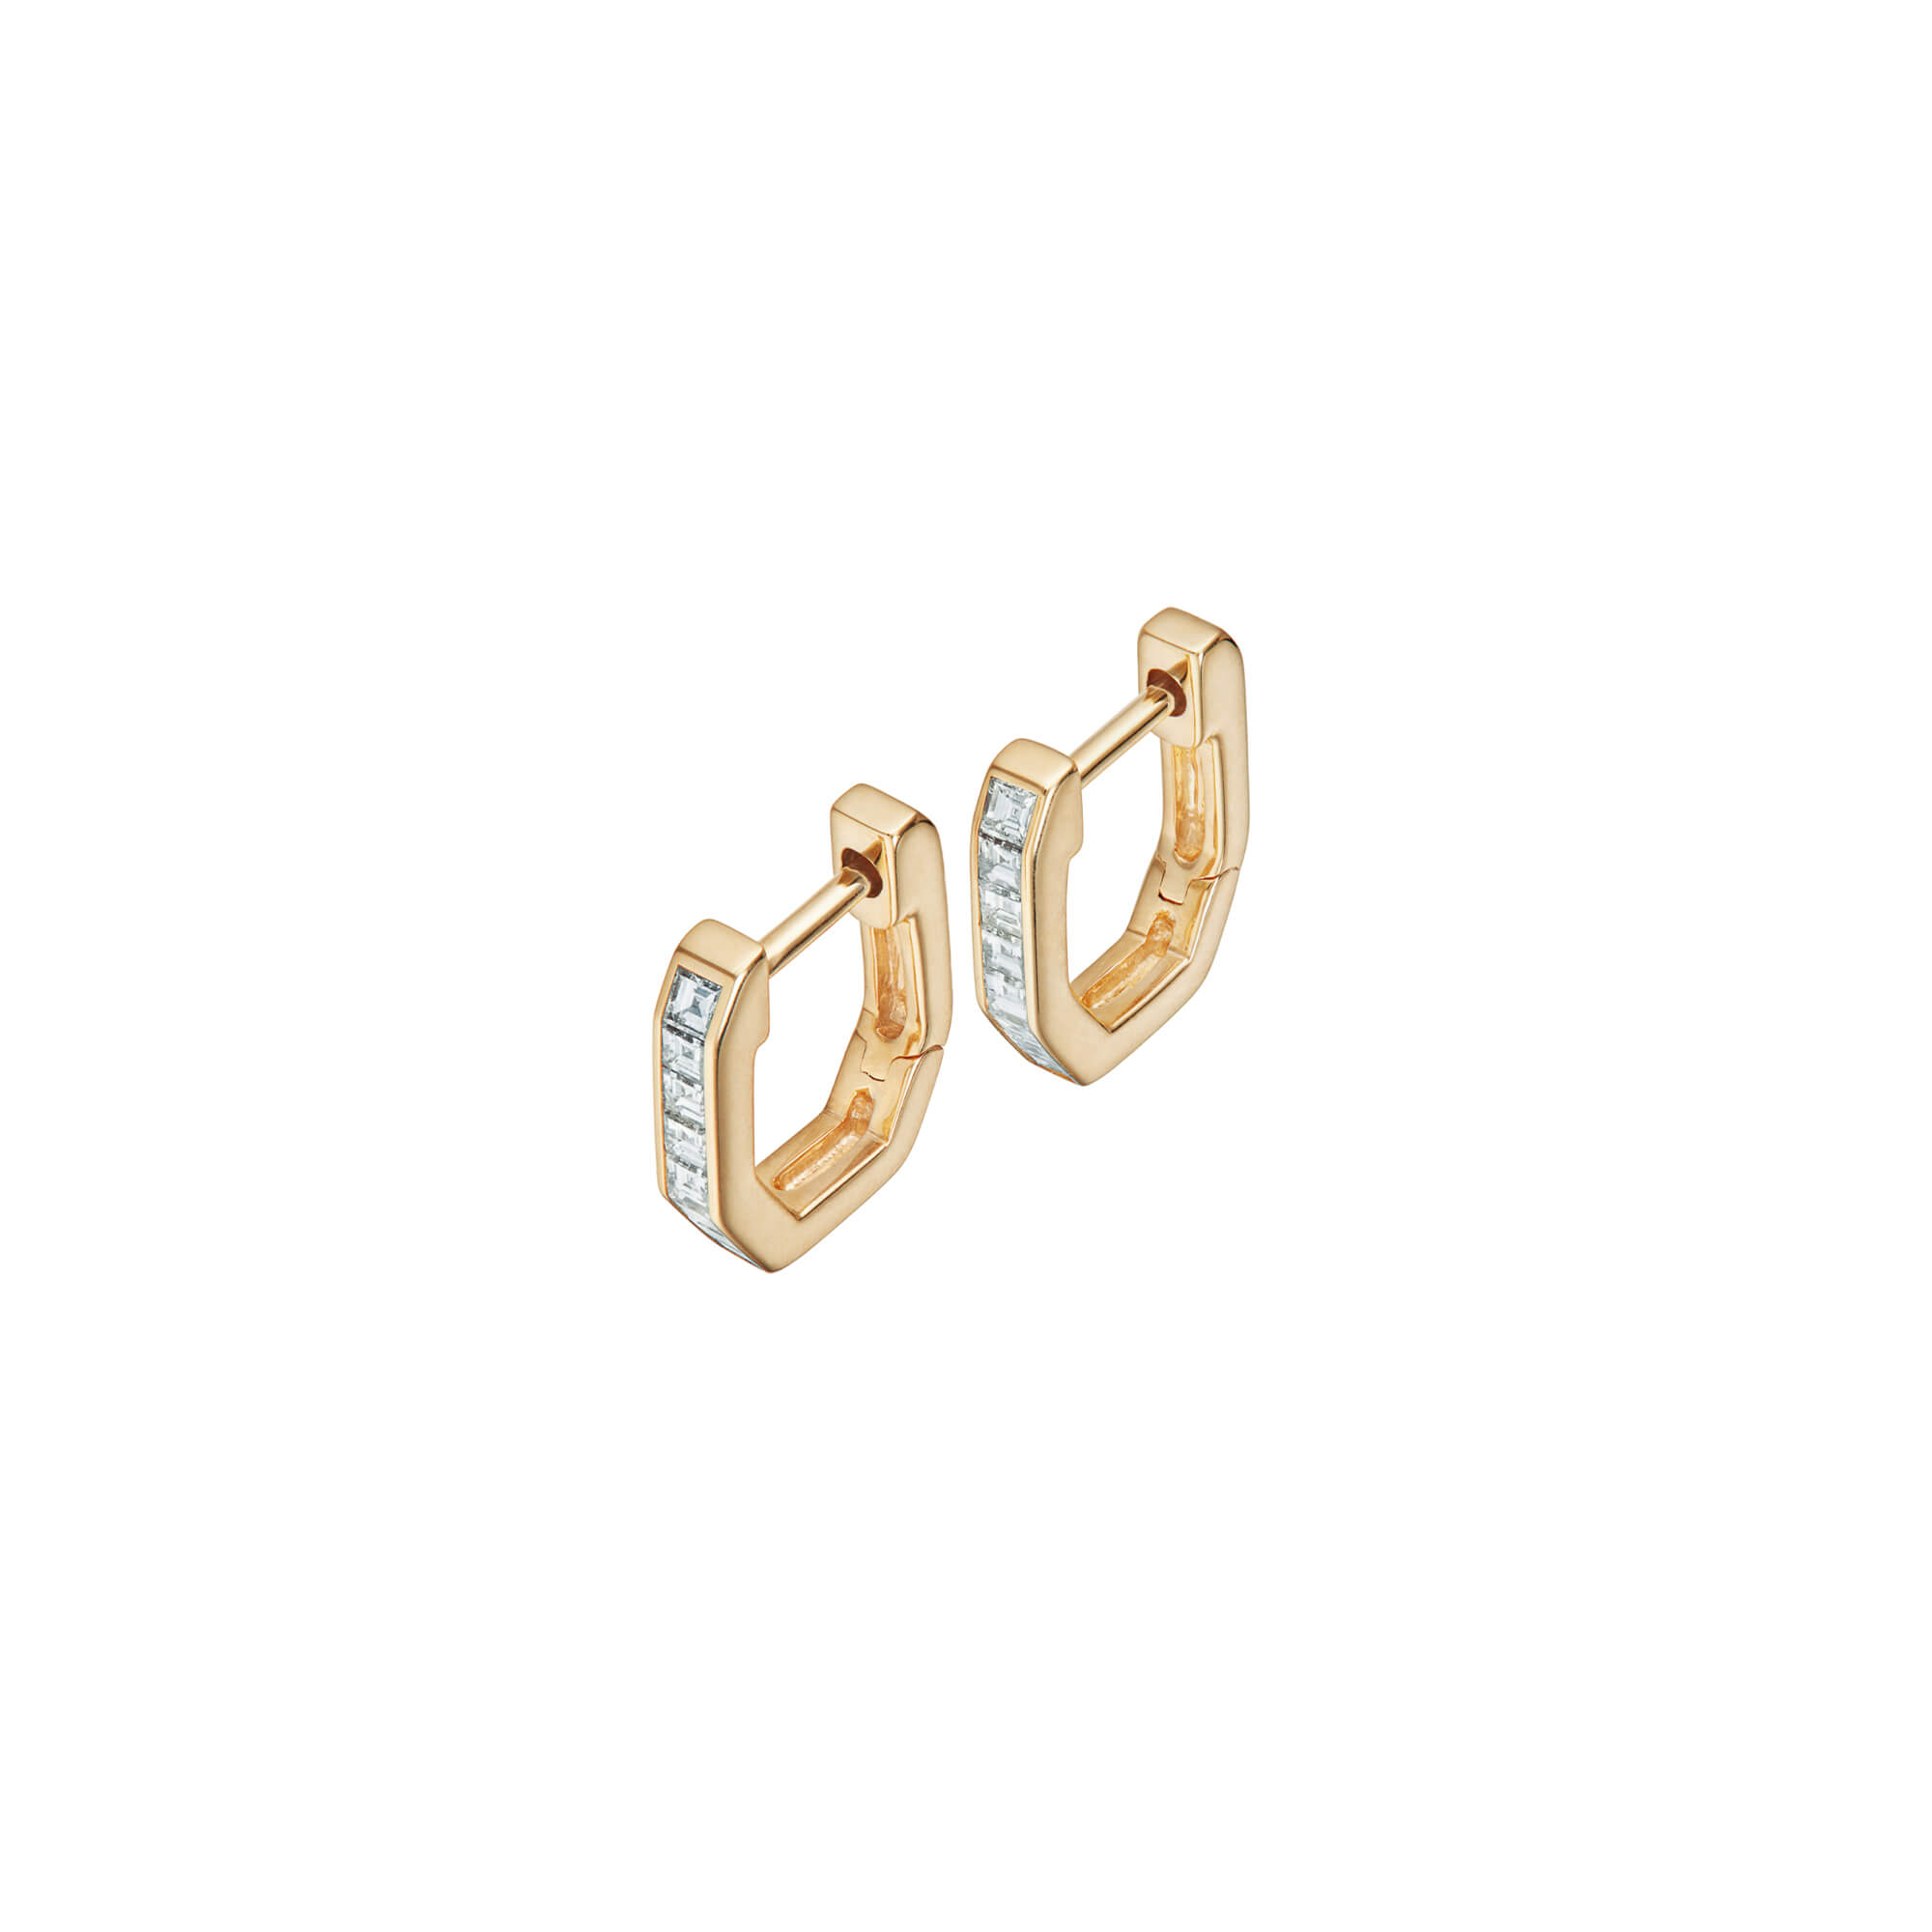 18ct Yellow Gold and White Diamonds Sleepers | CH₂